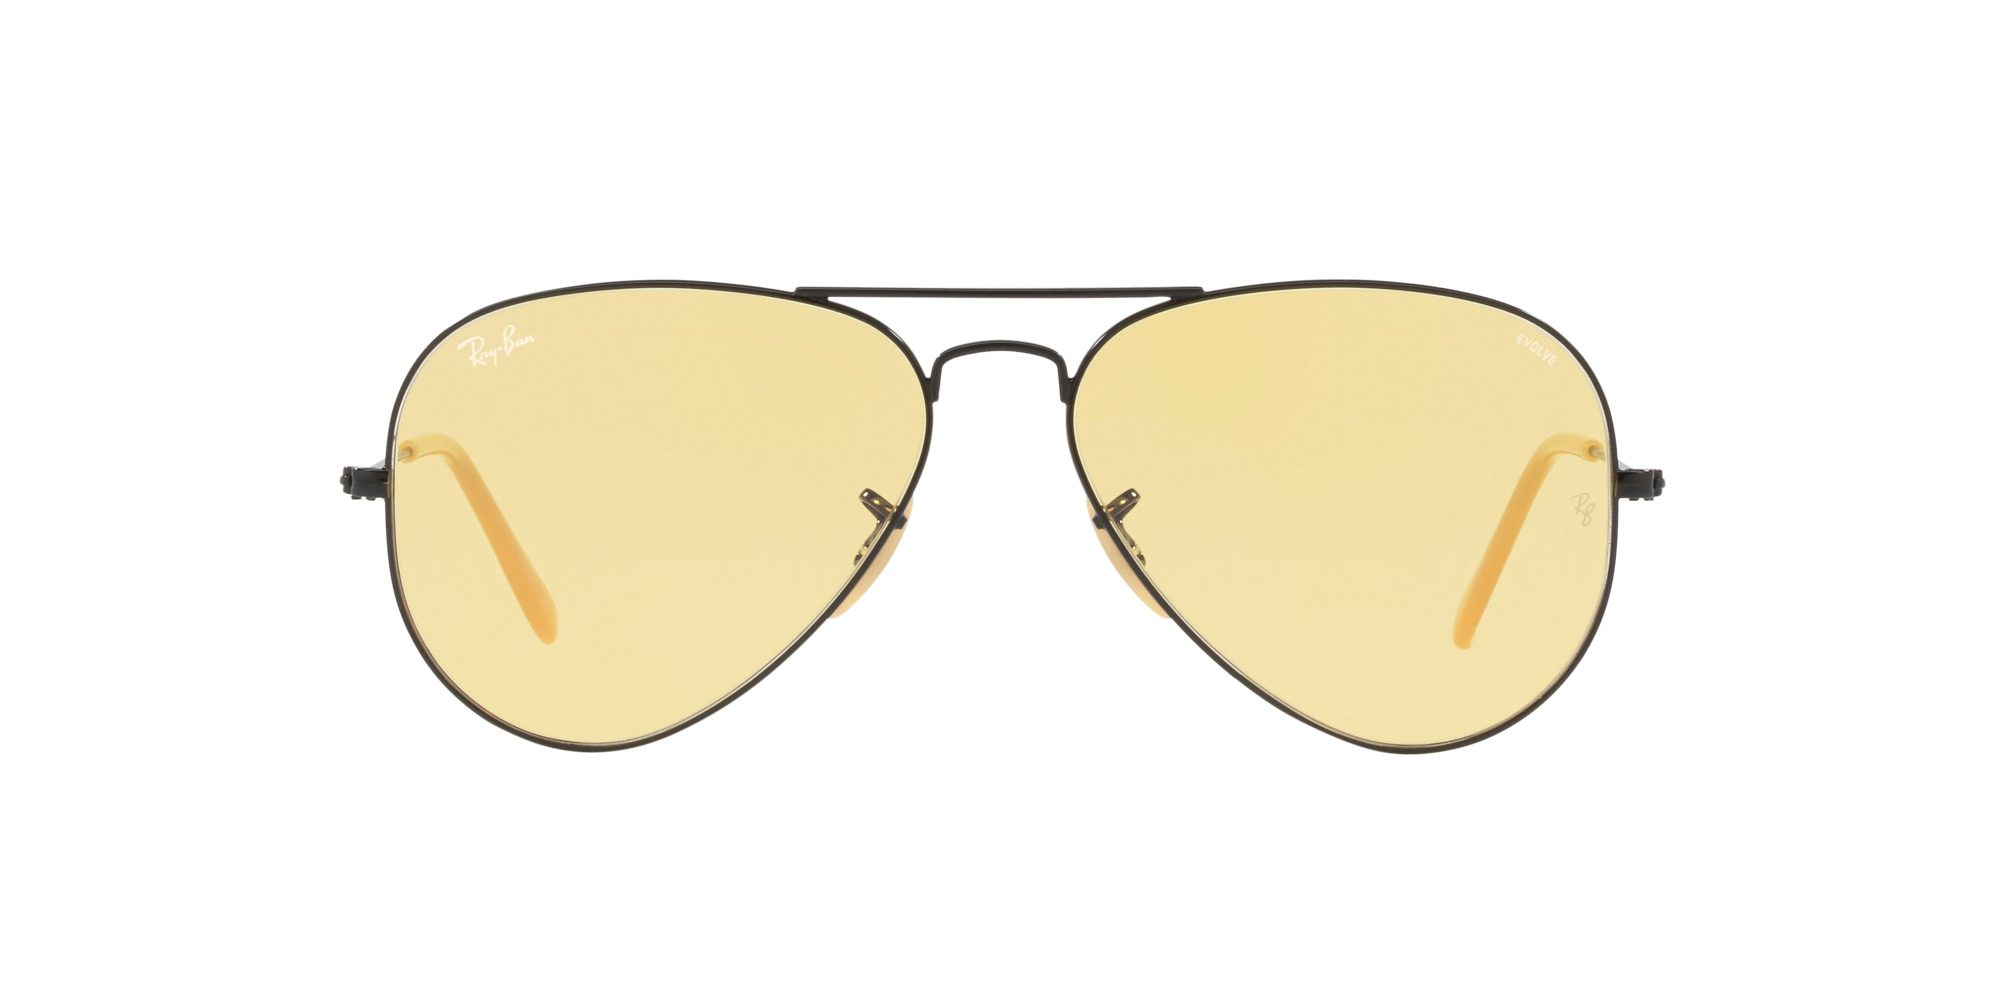 RAY-BAN AVIATOR RB 3025 90664A FOTOCROMATICAS 58mm-360